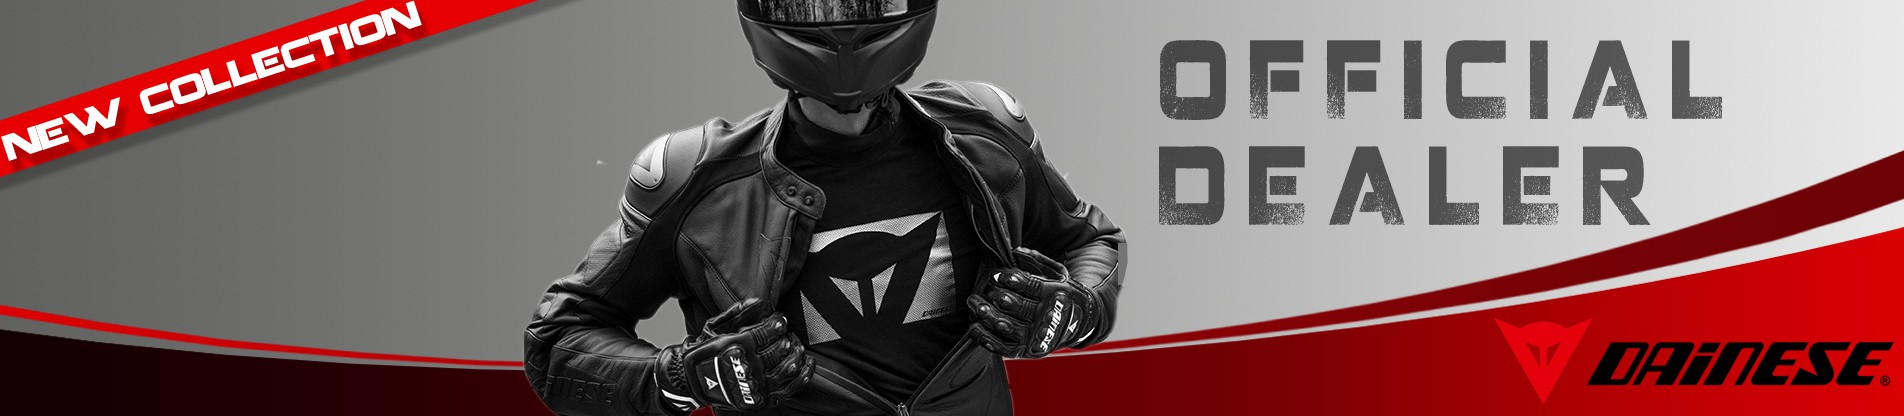 Dainese New Collection